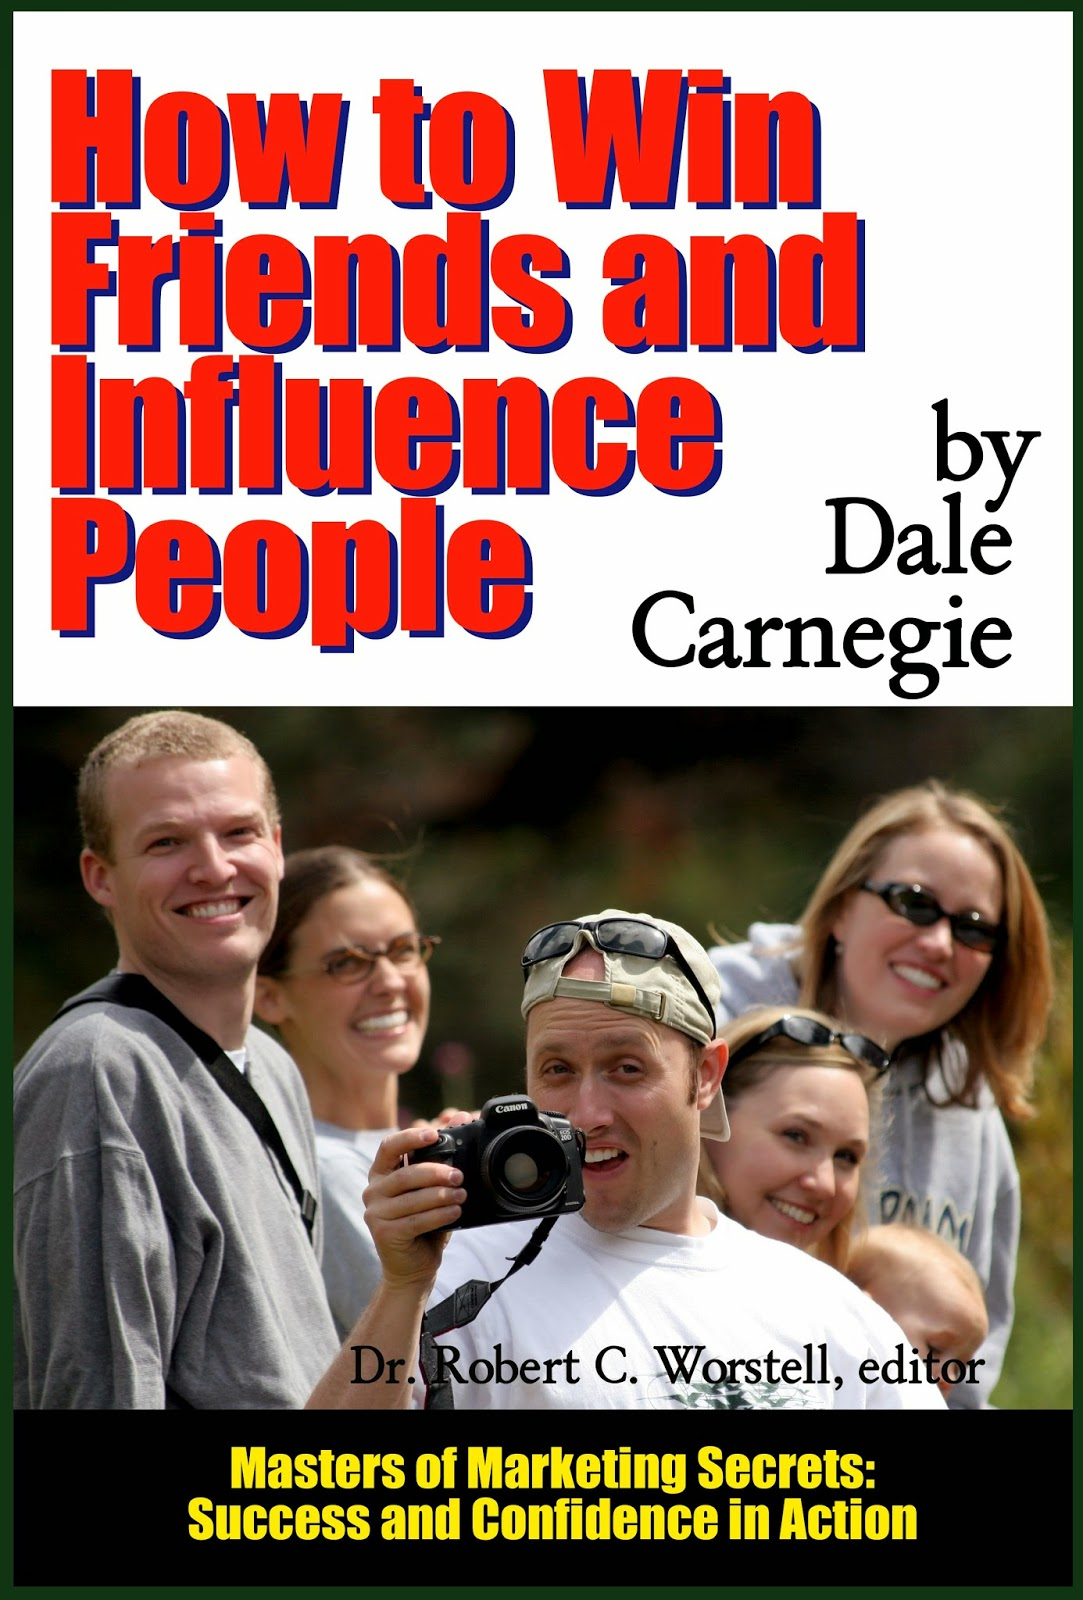 How to Win Friends and Influence People by Dale Carnegie newly an ebook and paperback